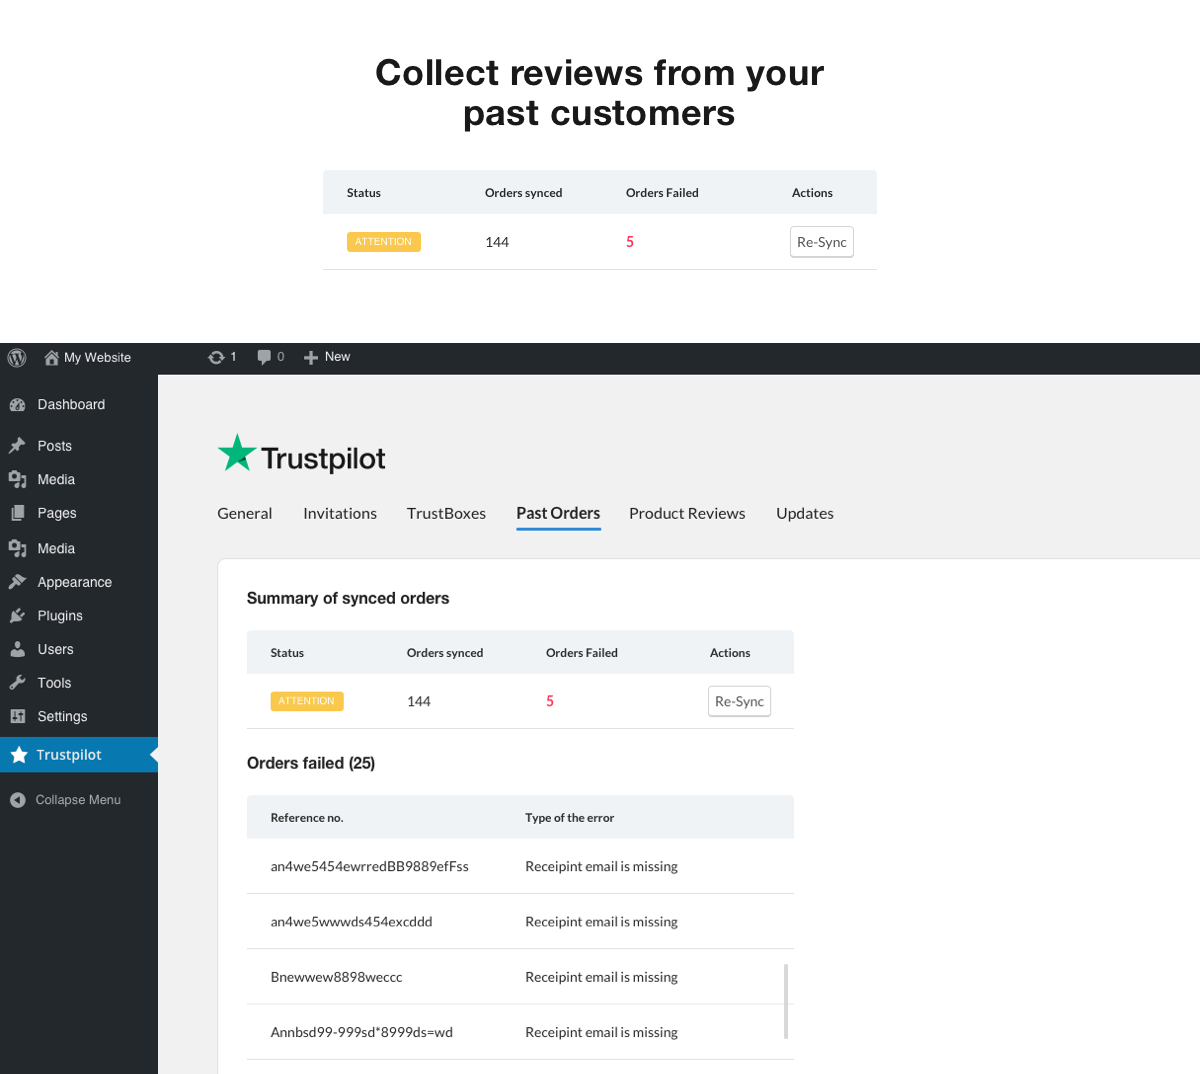 Collect reviews from your past customers